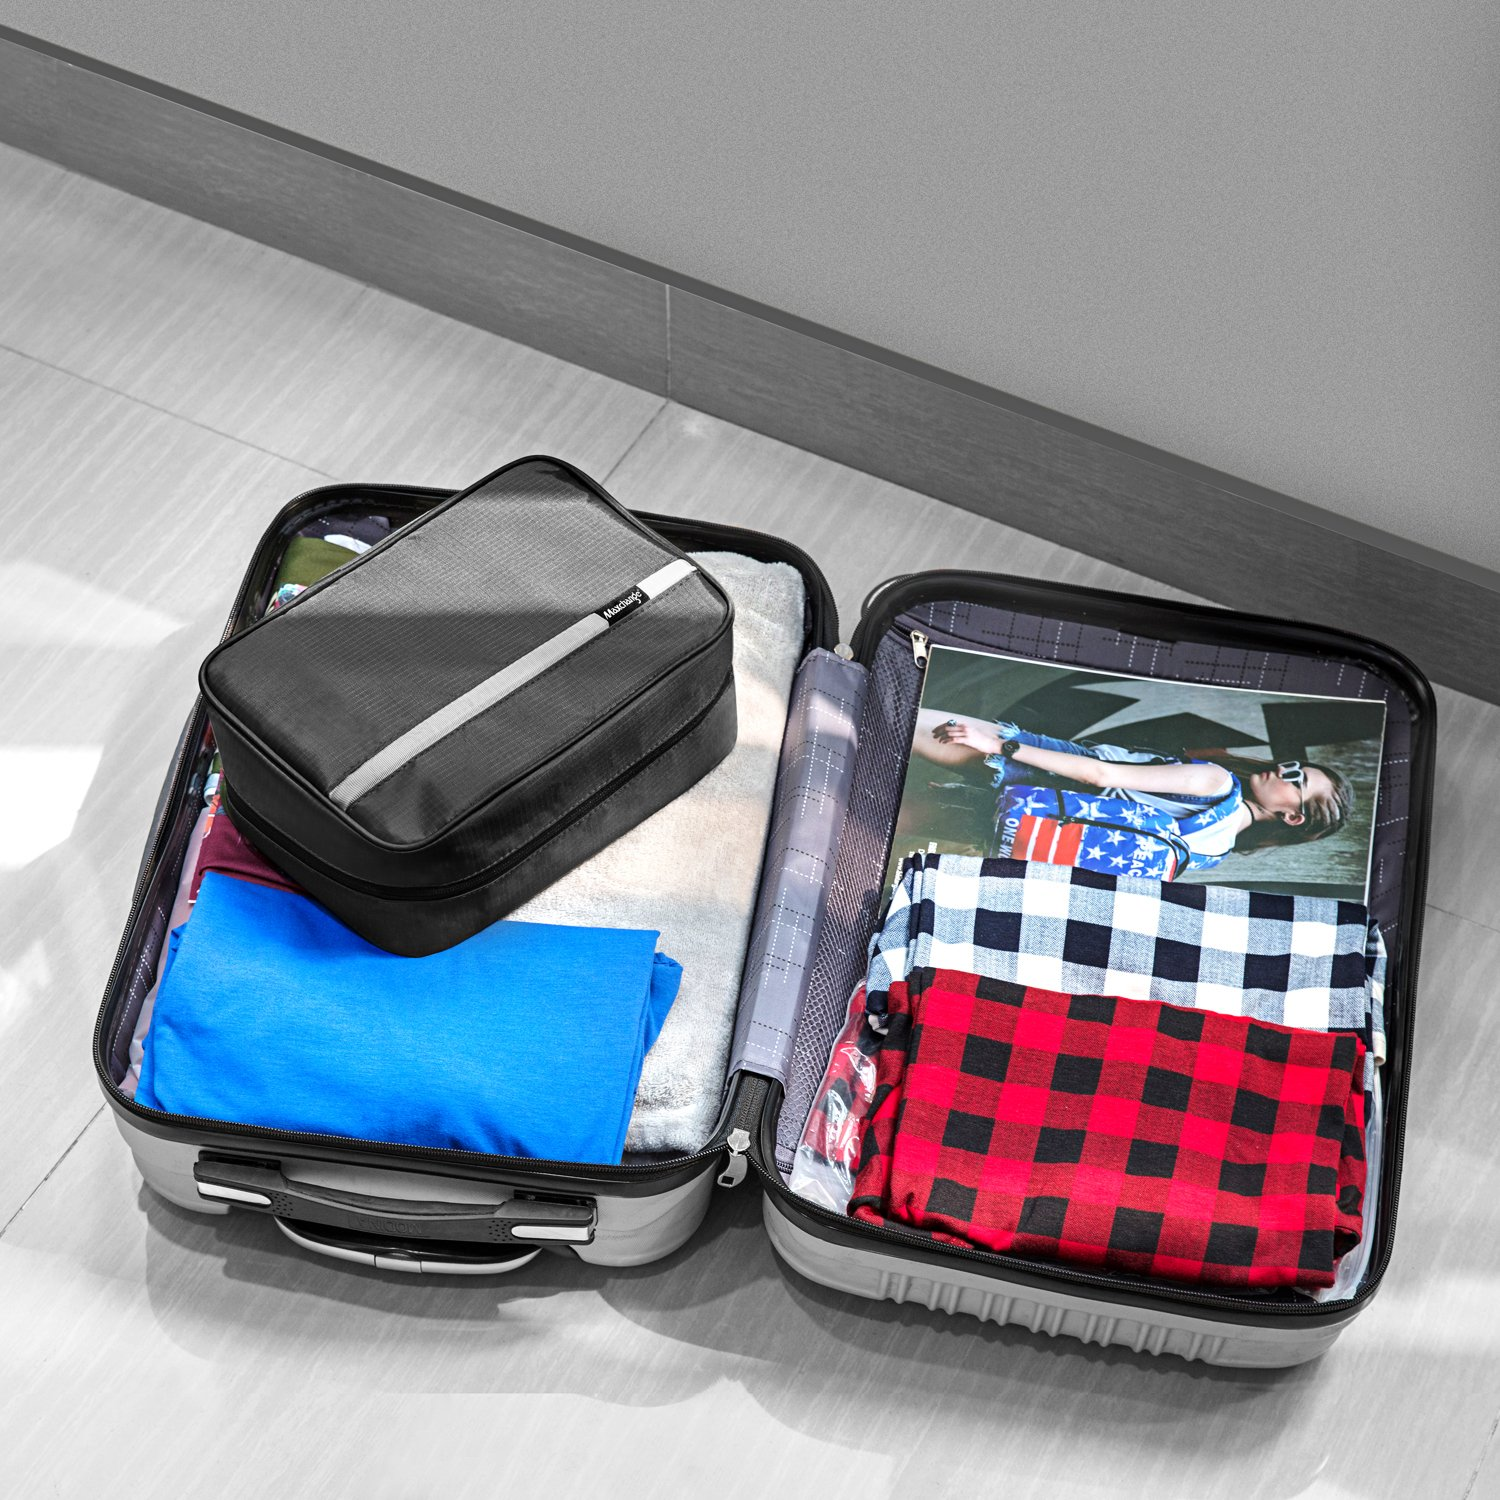 Maxchange Hanging Toiletry Bag | Compact Travel Toiletry Bag for Men/Women | Foldable Mens Hygiene Bag with 4 Compartments| Waterproof Travel Bathroom Bag.(Black) by Maxchange